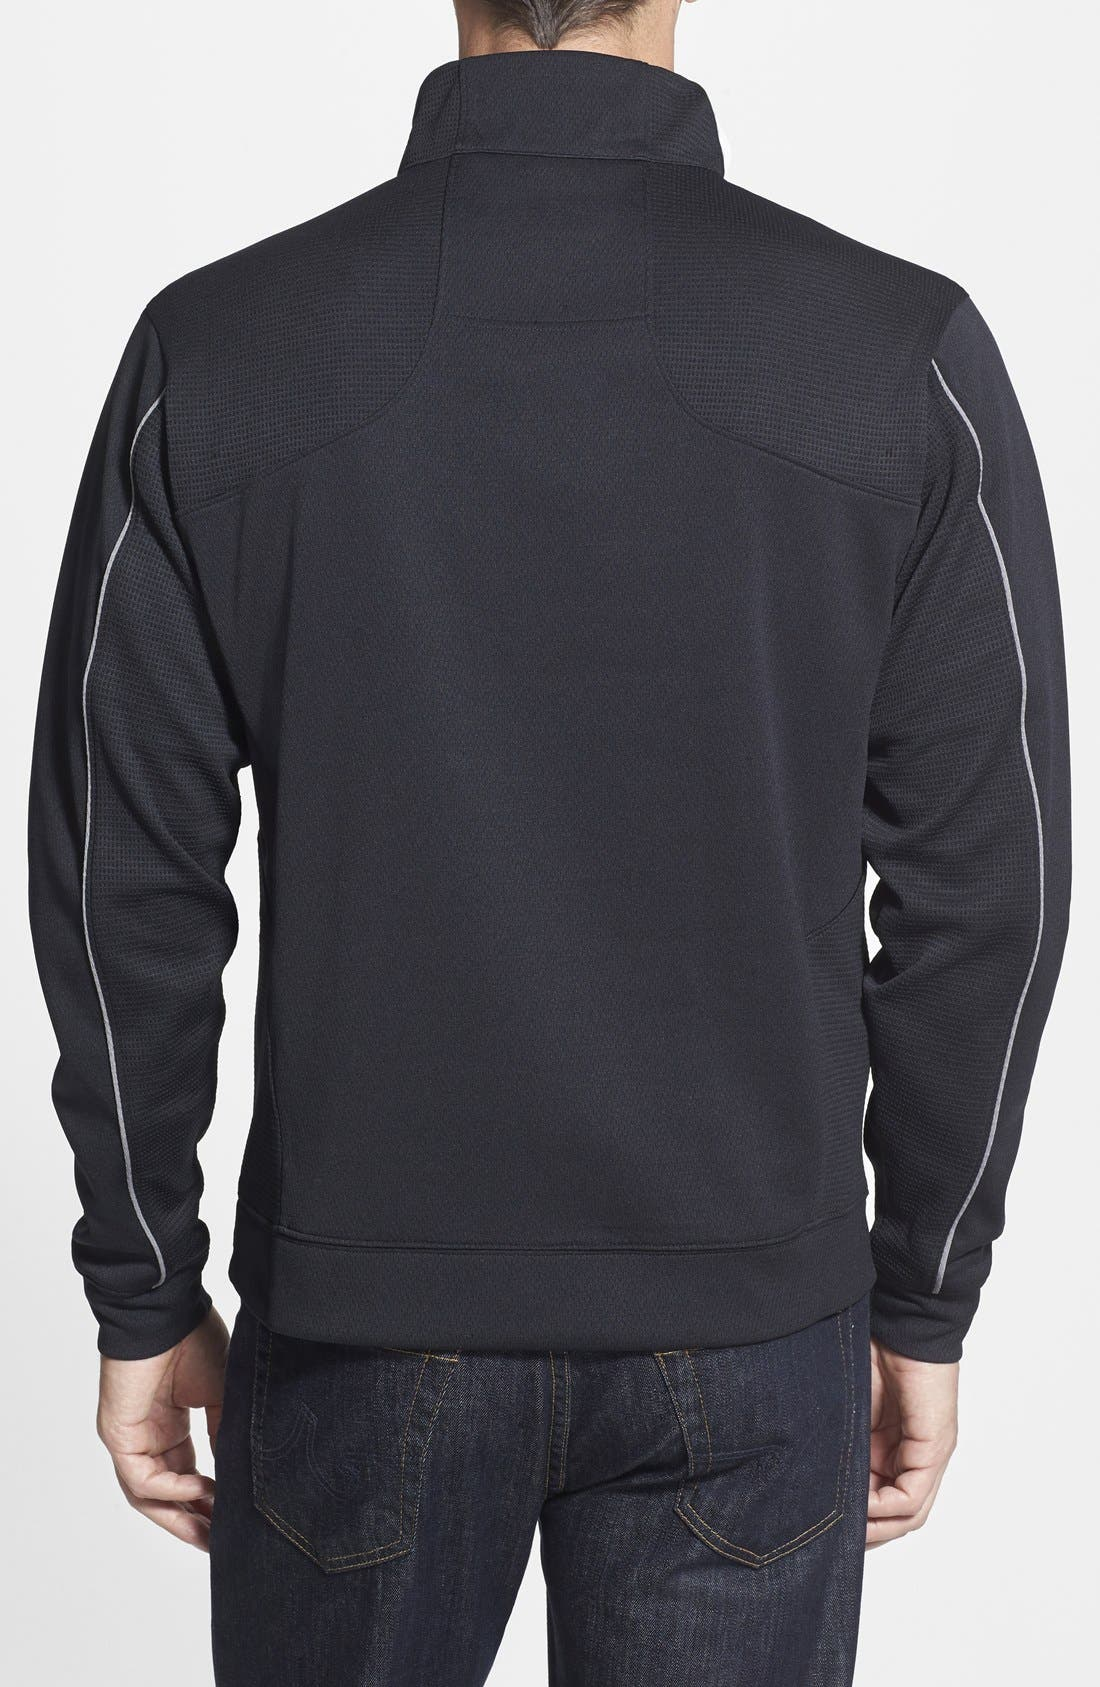 Green Bay Packers - Edge DryTec Moisture Wicking Half Zip Pullover,                             Alternate thumbnail 2, color,                             001